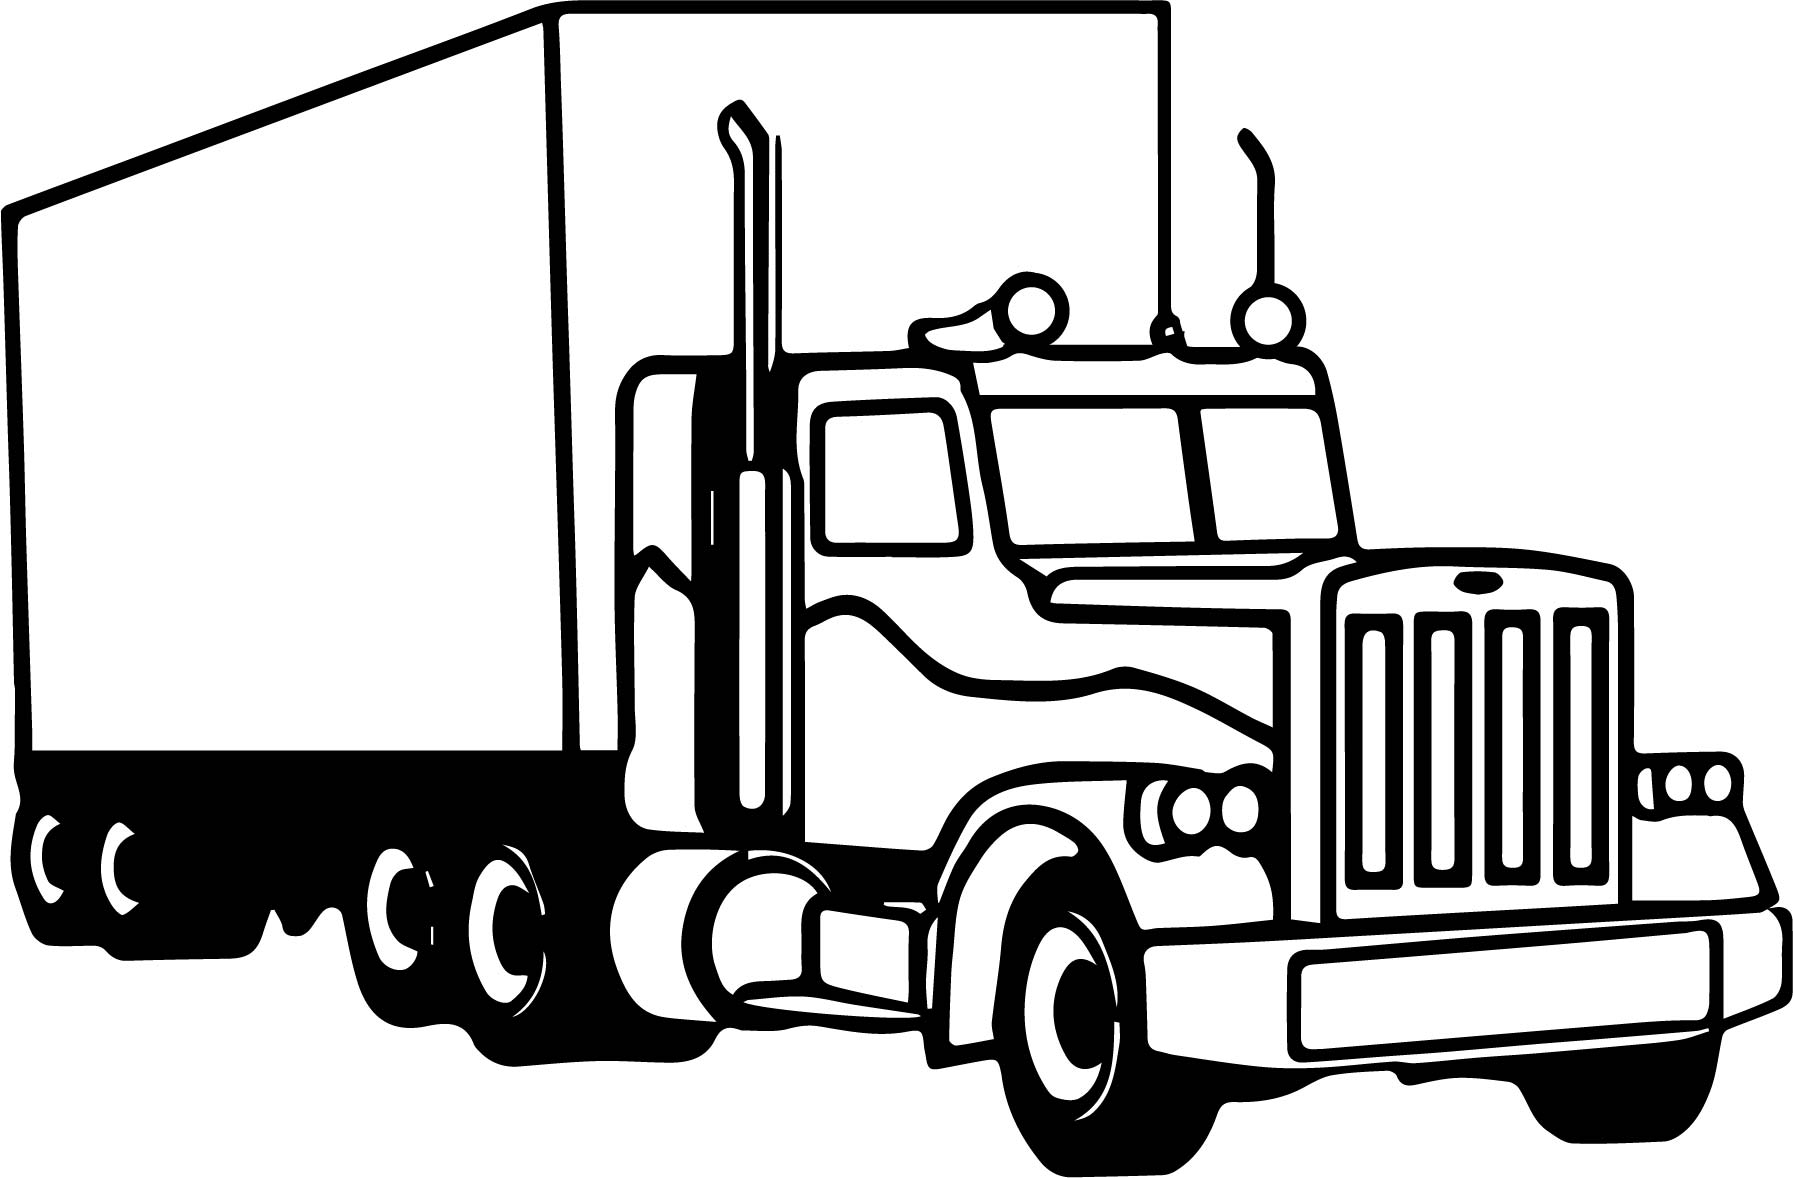 semi printable coloring pages | Semi Truck Coloring Page | Wecoloringpage.com